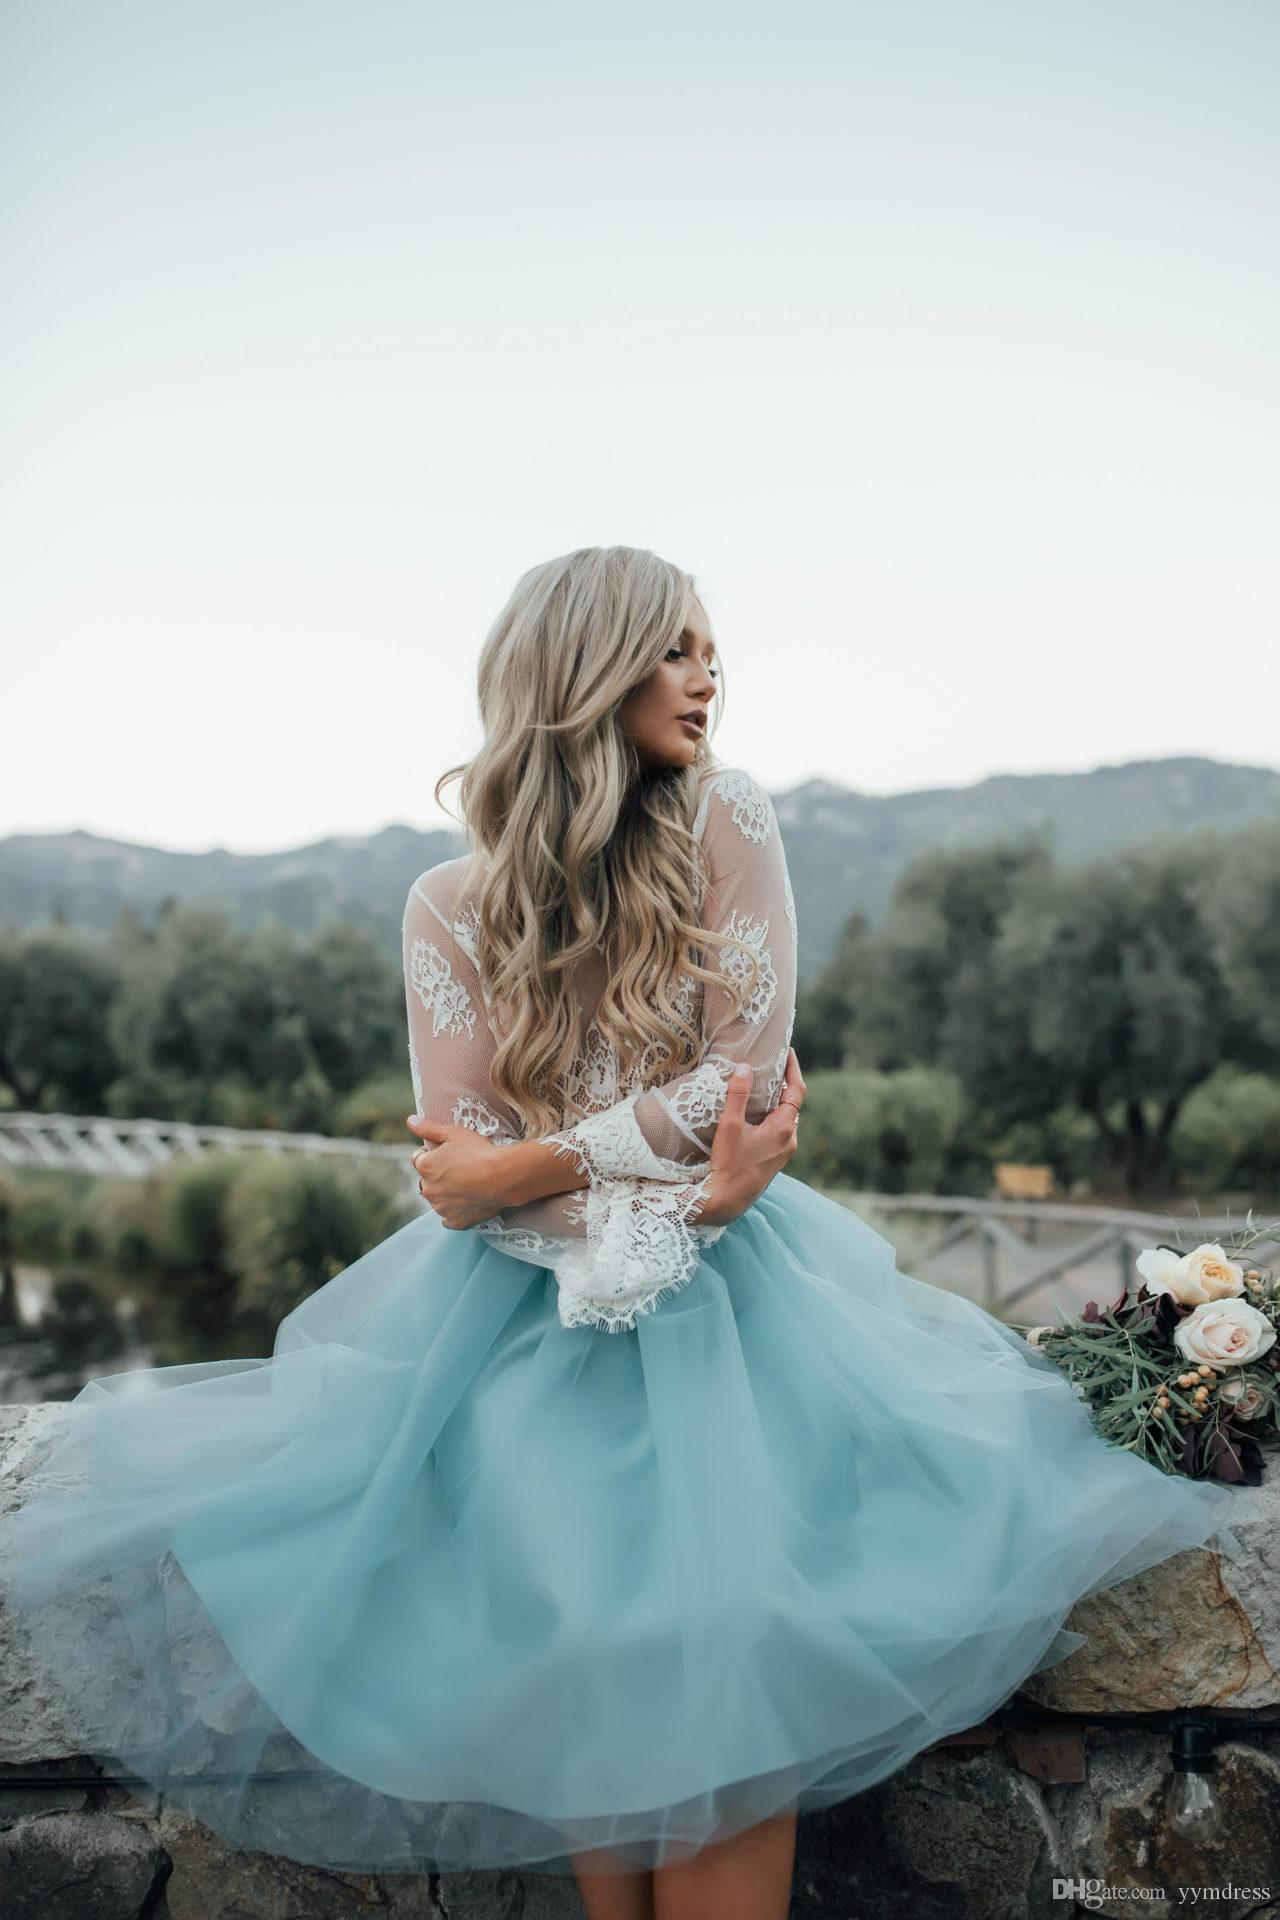 cocktail dresses 2019 Long Belle Sleeve tea-length arabian formal evening gowns Two Pieces Short prom Blue Lace See Through Plus Size